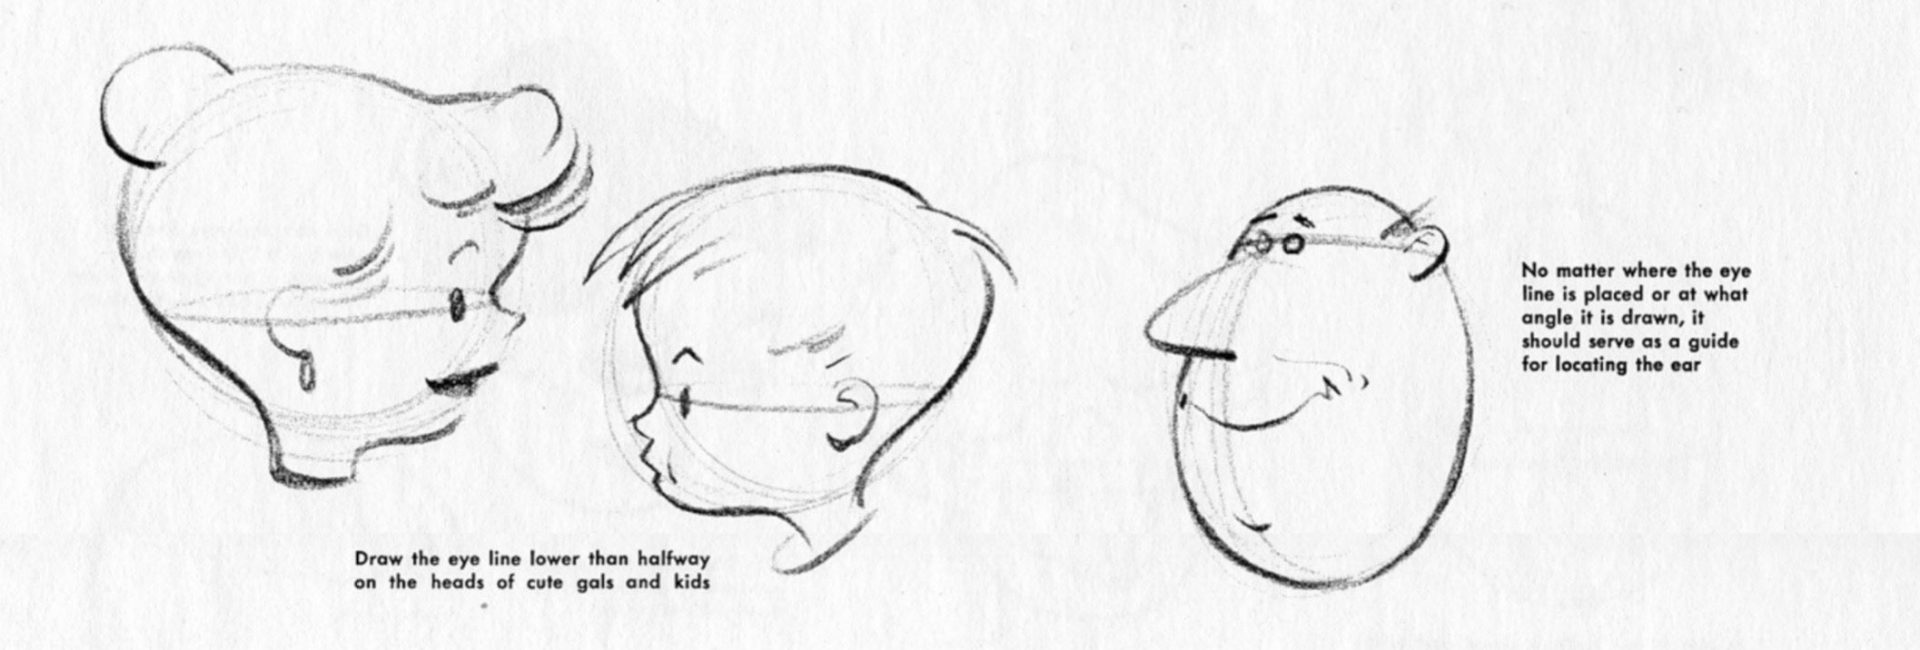 how to draw a head with hair